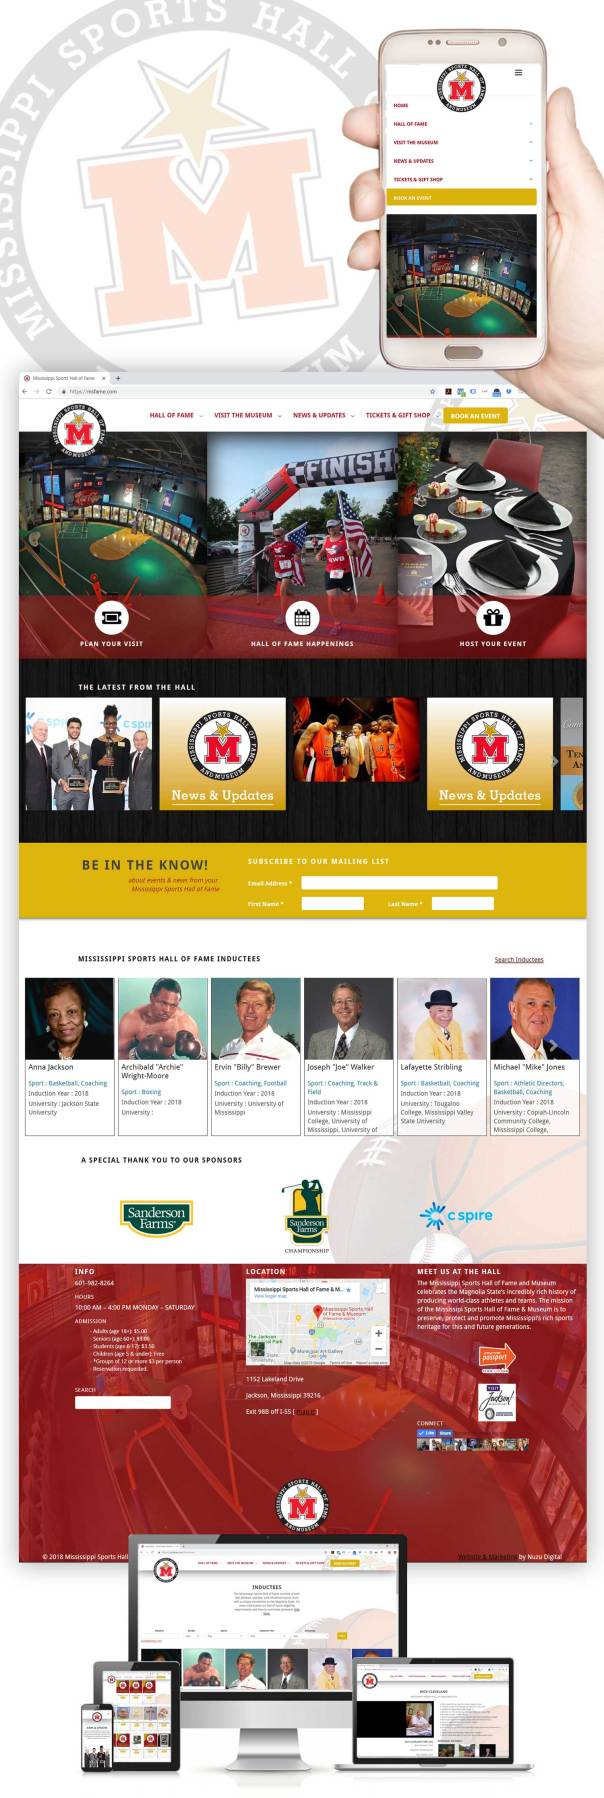 Responsive website design for the Mississippi Sports Hall of Fame